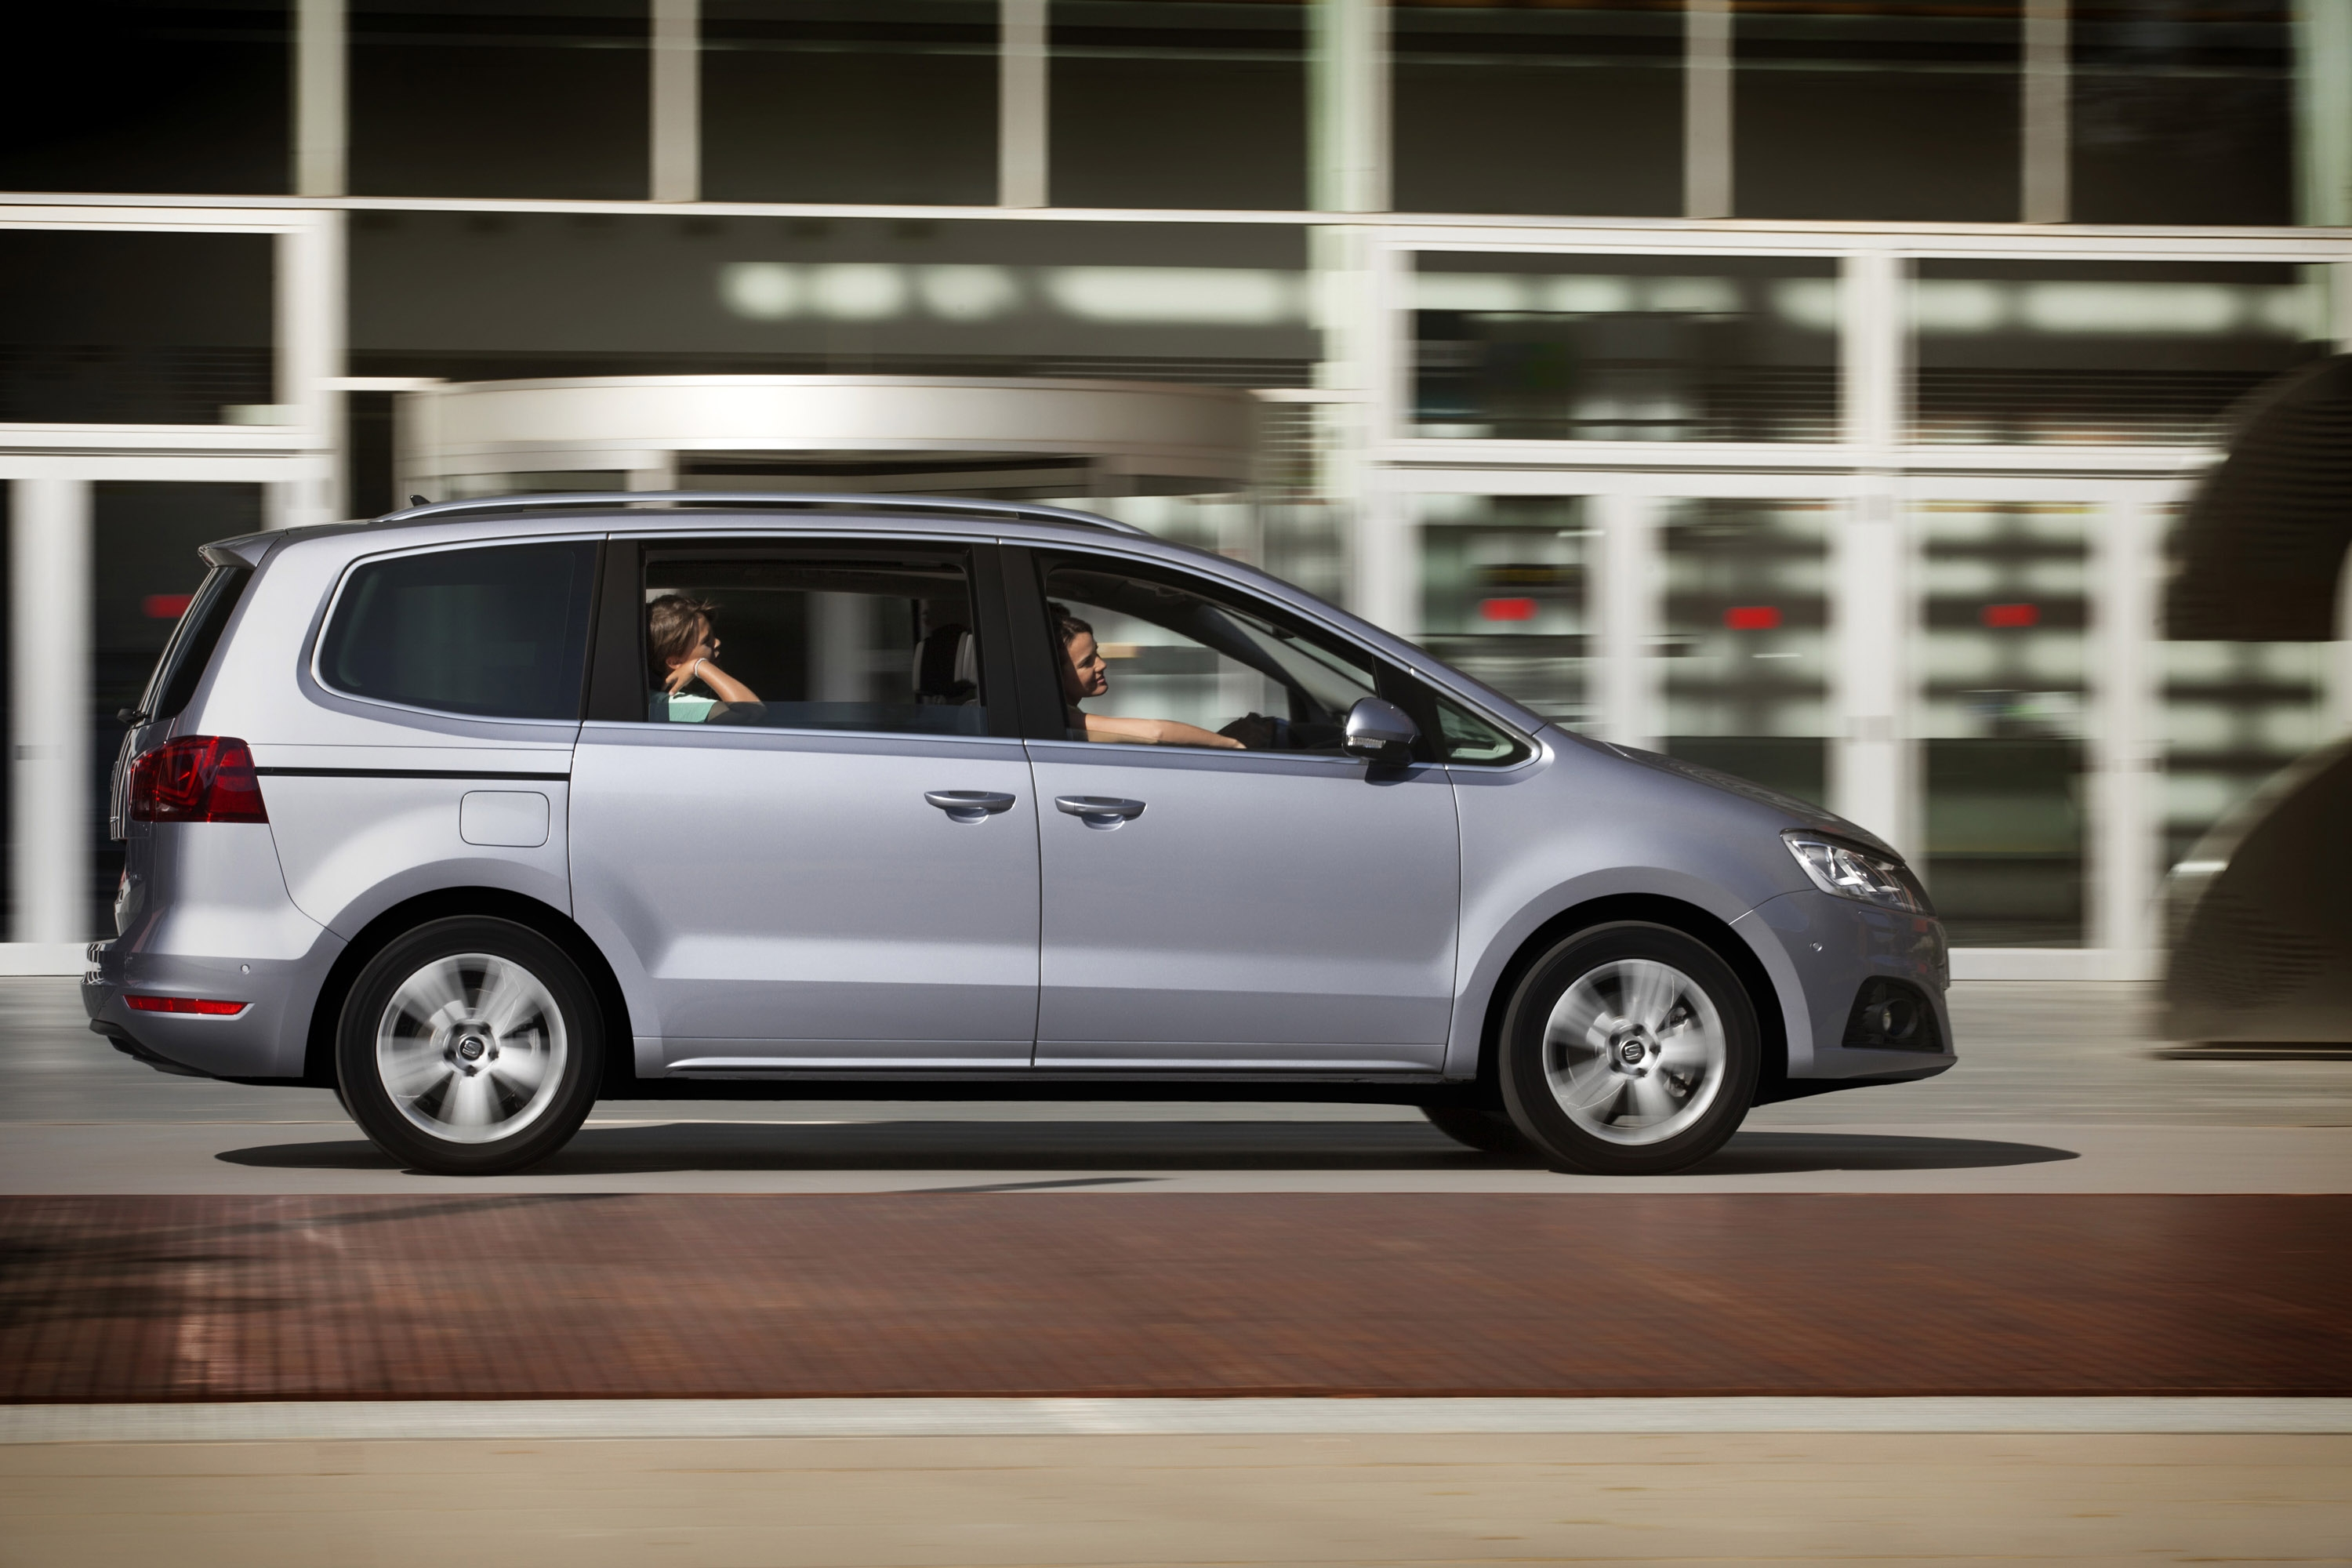 2016 Seat Alhambra thumbnail photo 92692